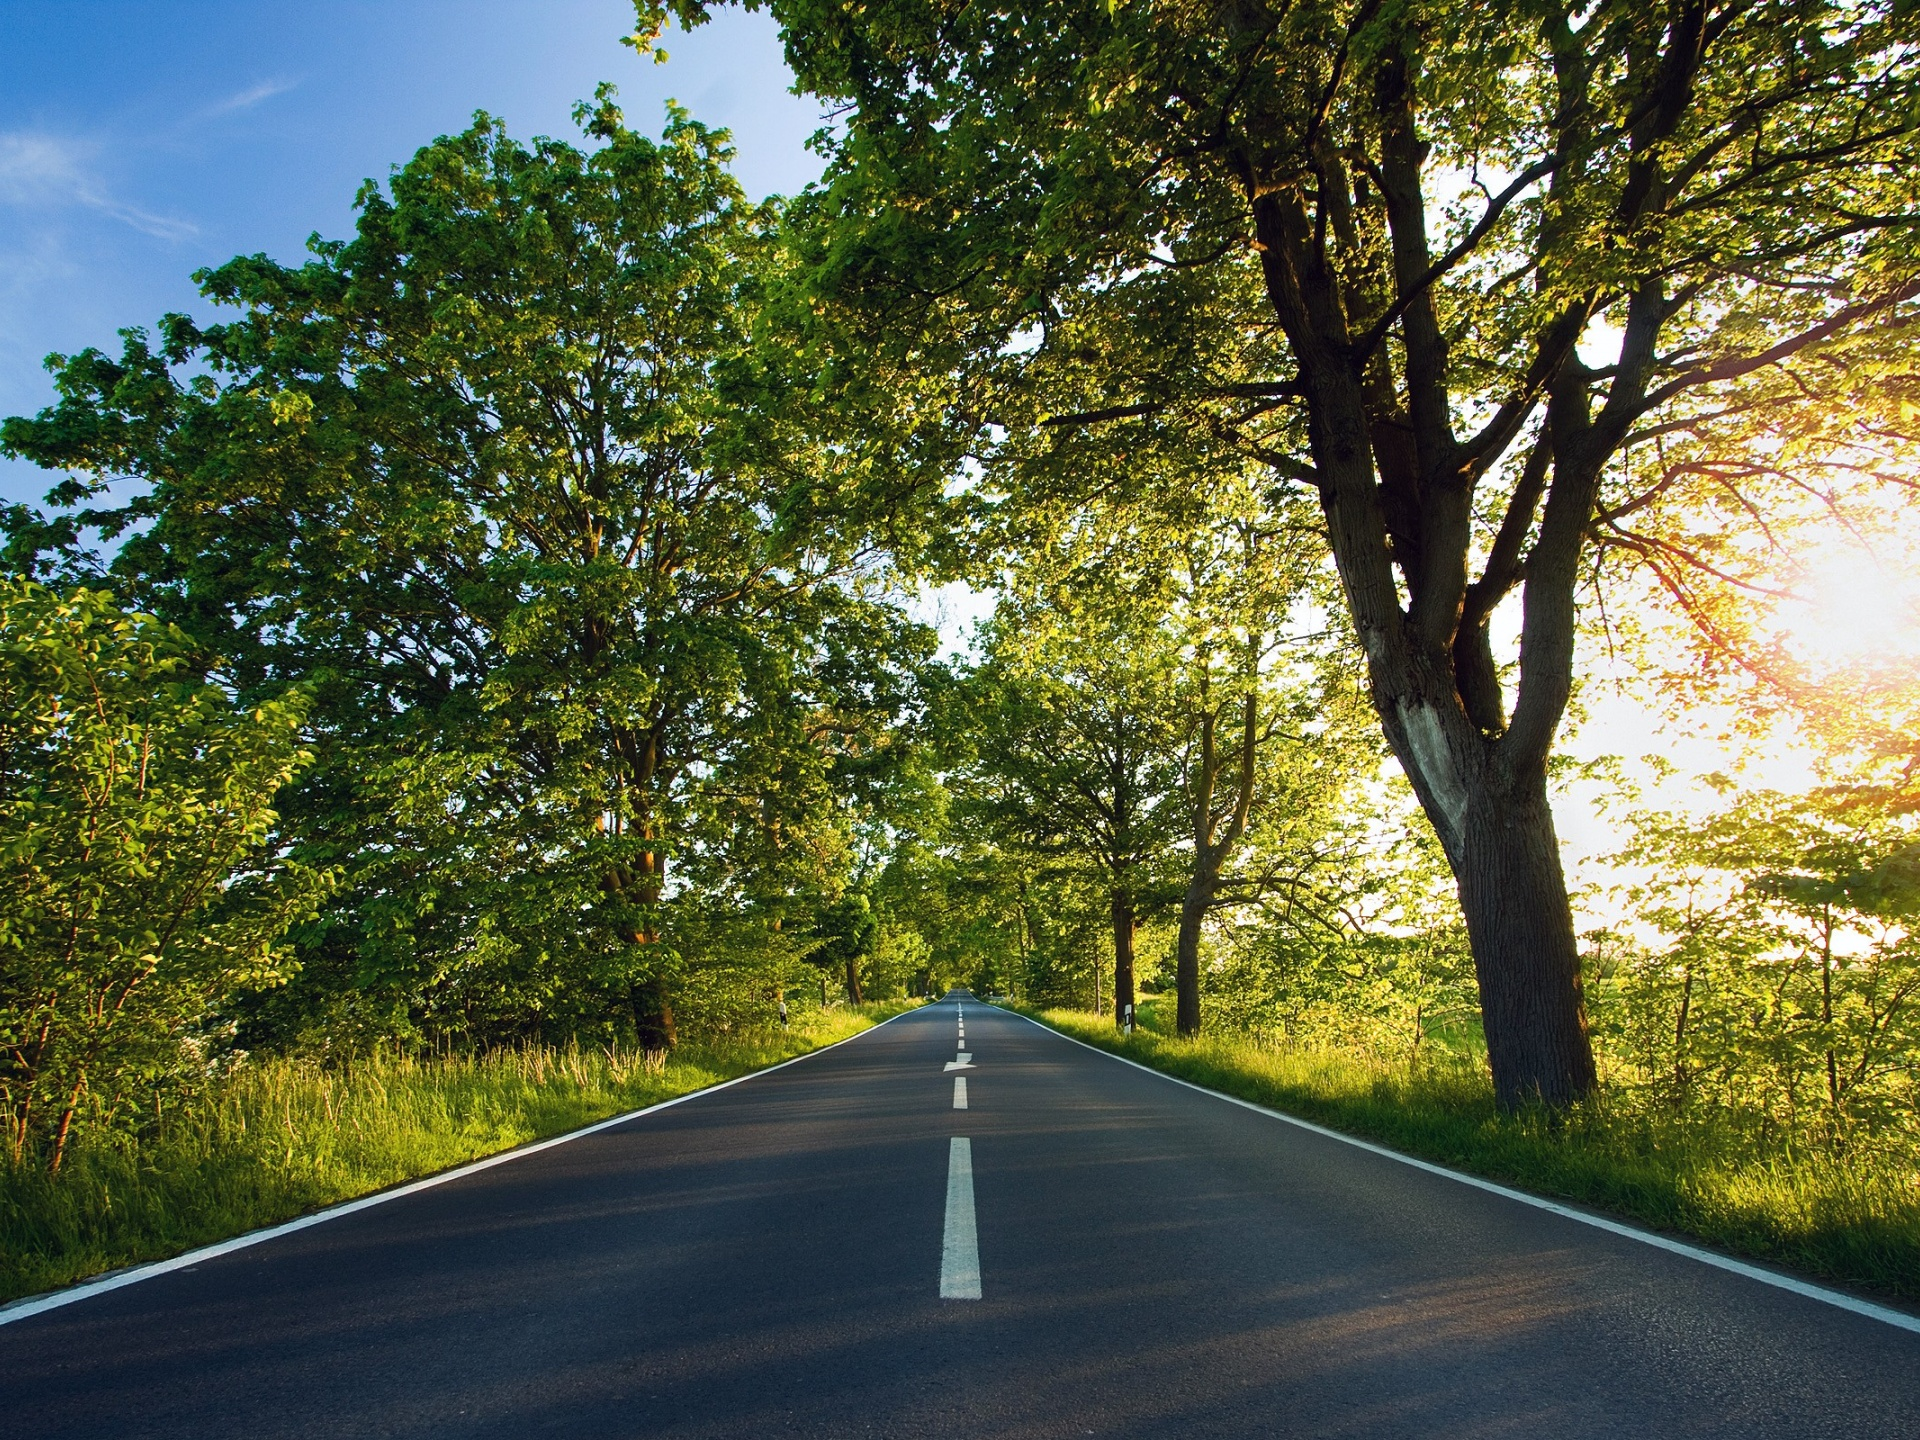 click to free download the wallpaper--Beautiful Images of Nature Landscape, a Straight Road, Tall Green Trees Alongside, Summer Scene 1920X1440 free wallpaper download